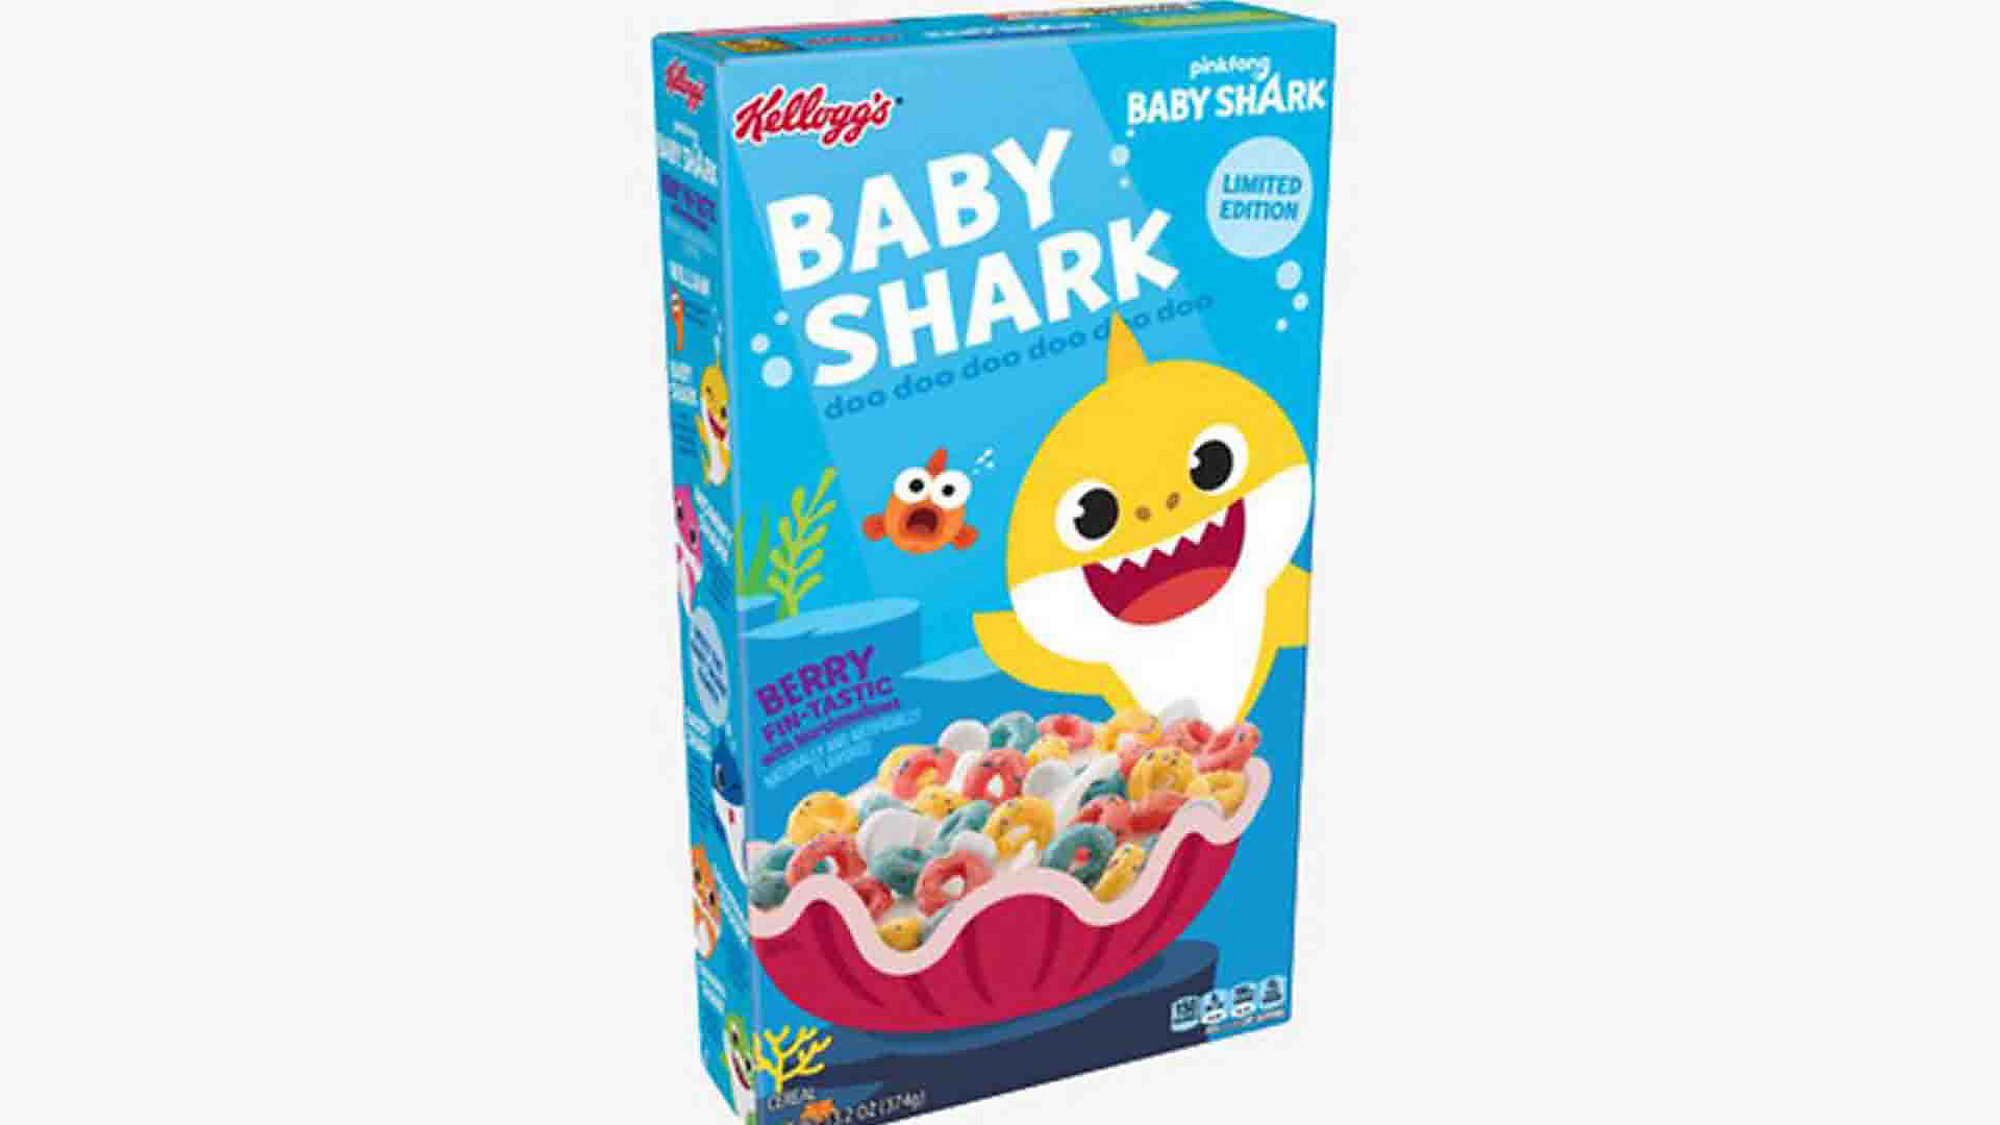 Kellogg's to Release Baby Shark Cereal